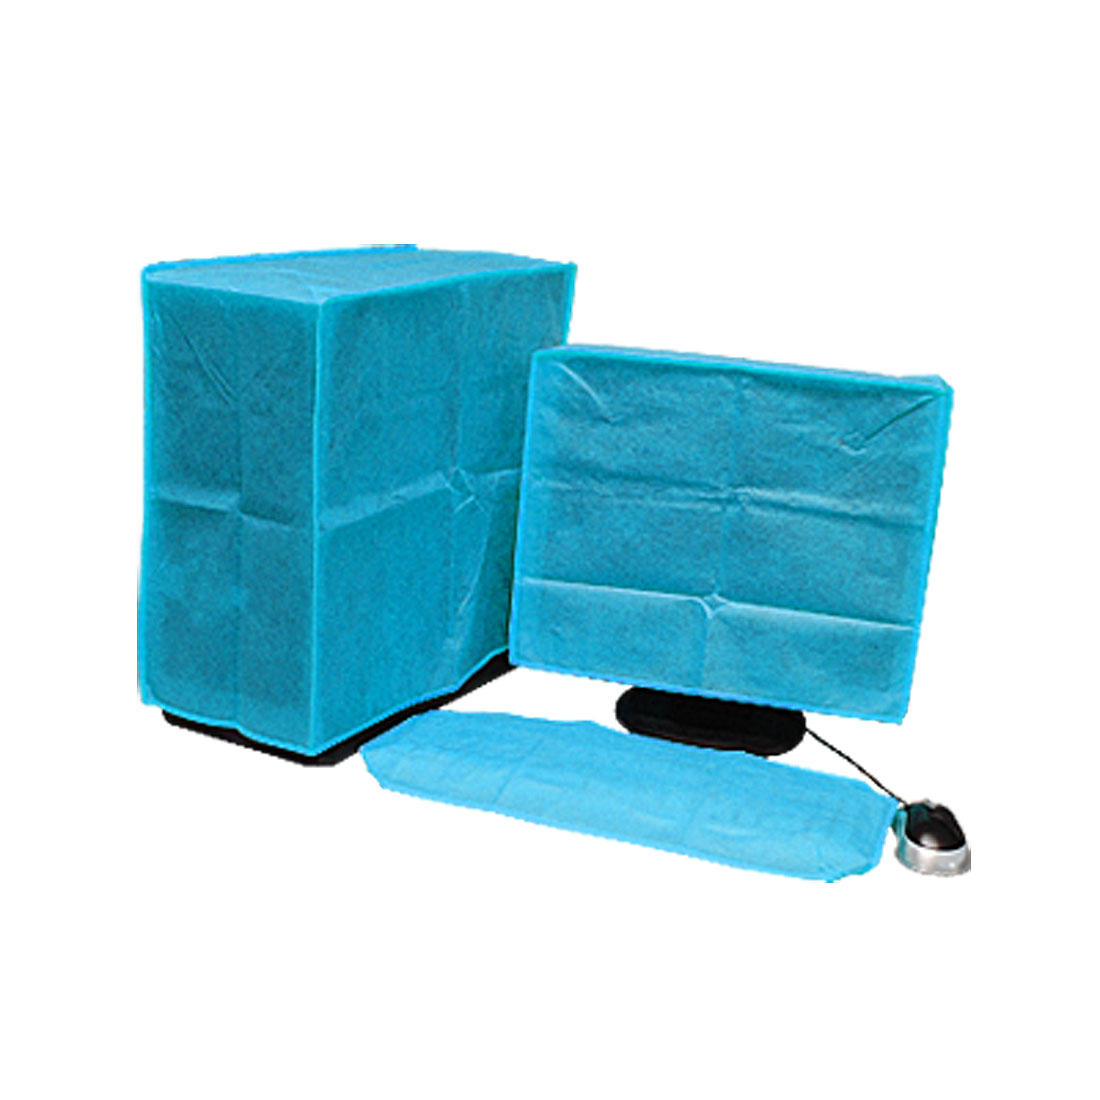 Blue LCD Computer Nonwoven Fabric Dust Cover Cap 22""